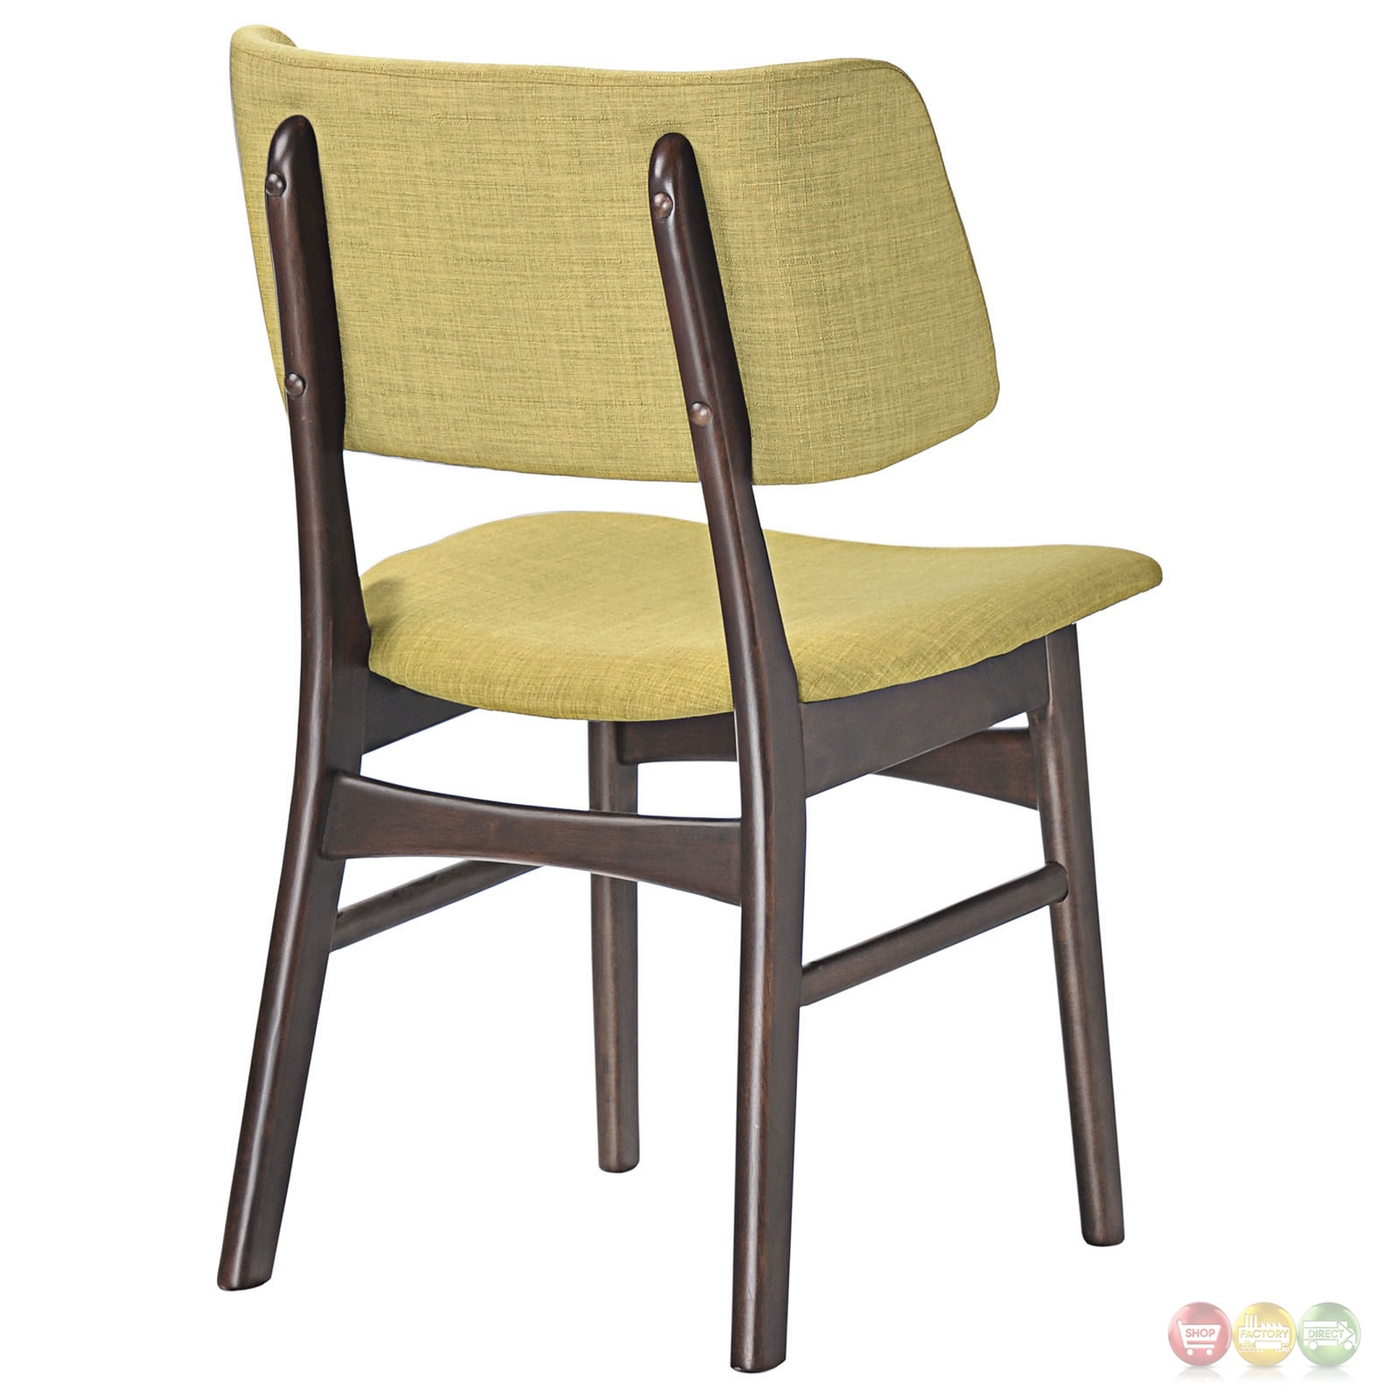 Vestige vintage modern walnut dining side chair with for Walnut dining chairs modern